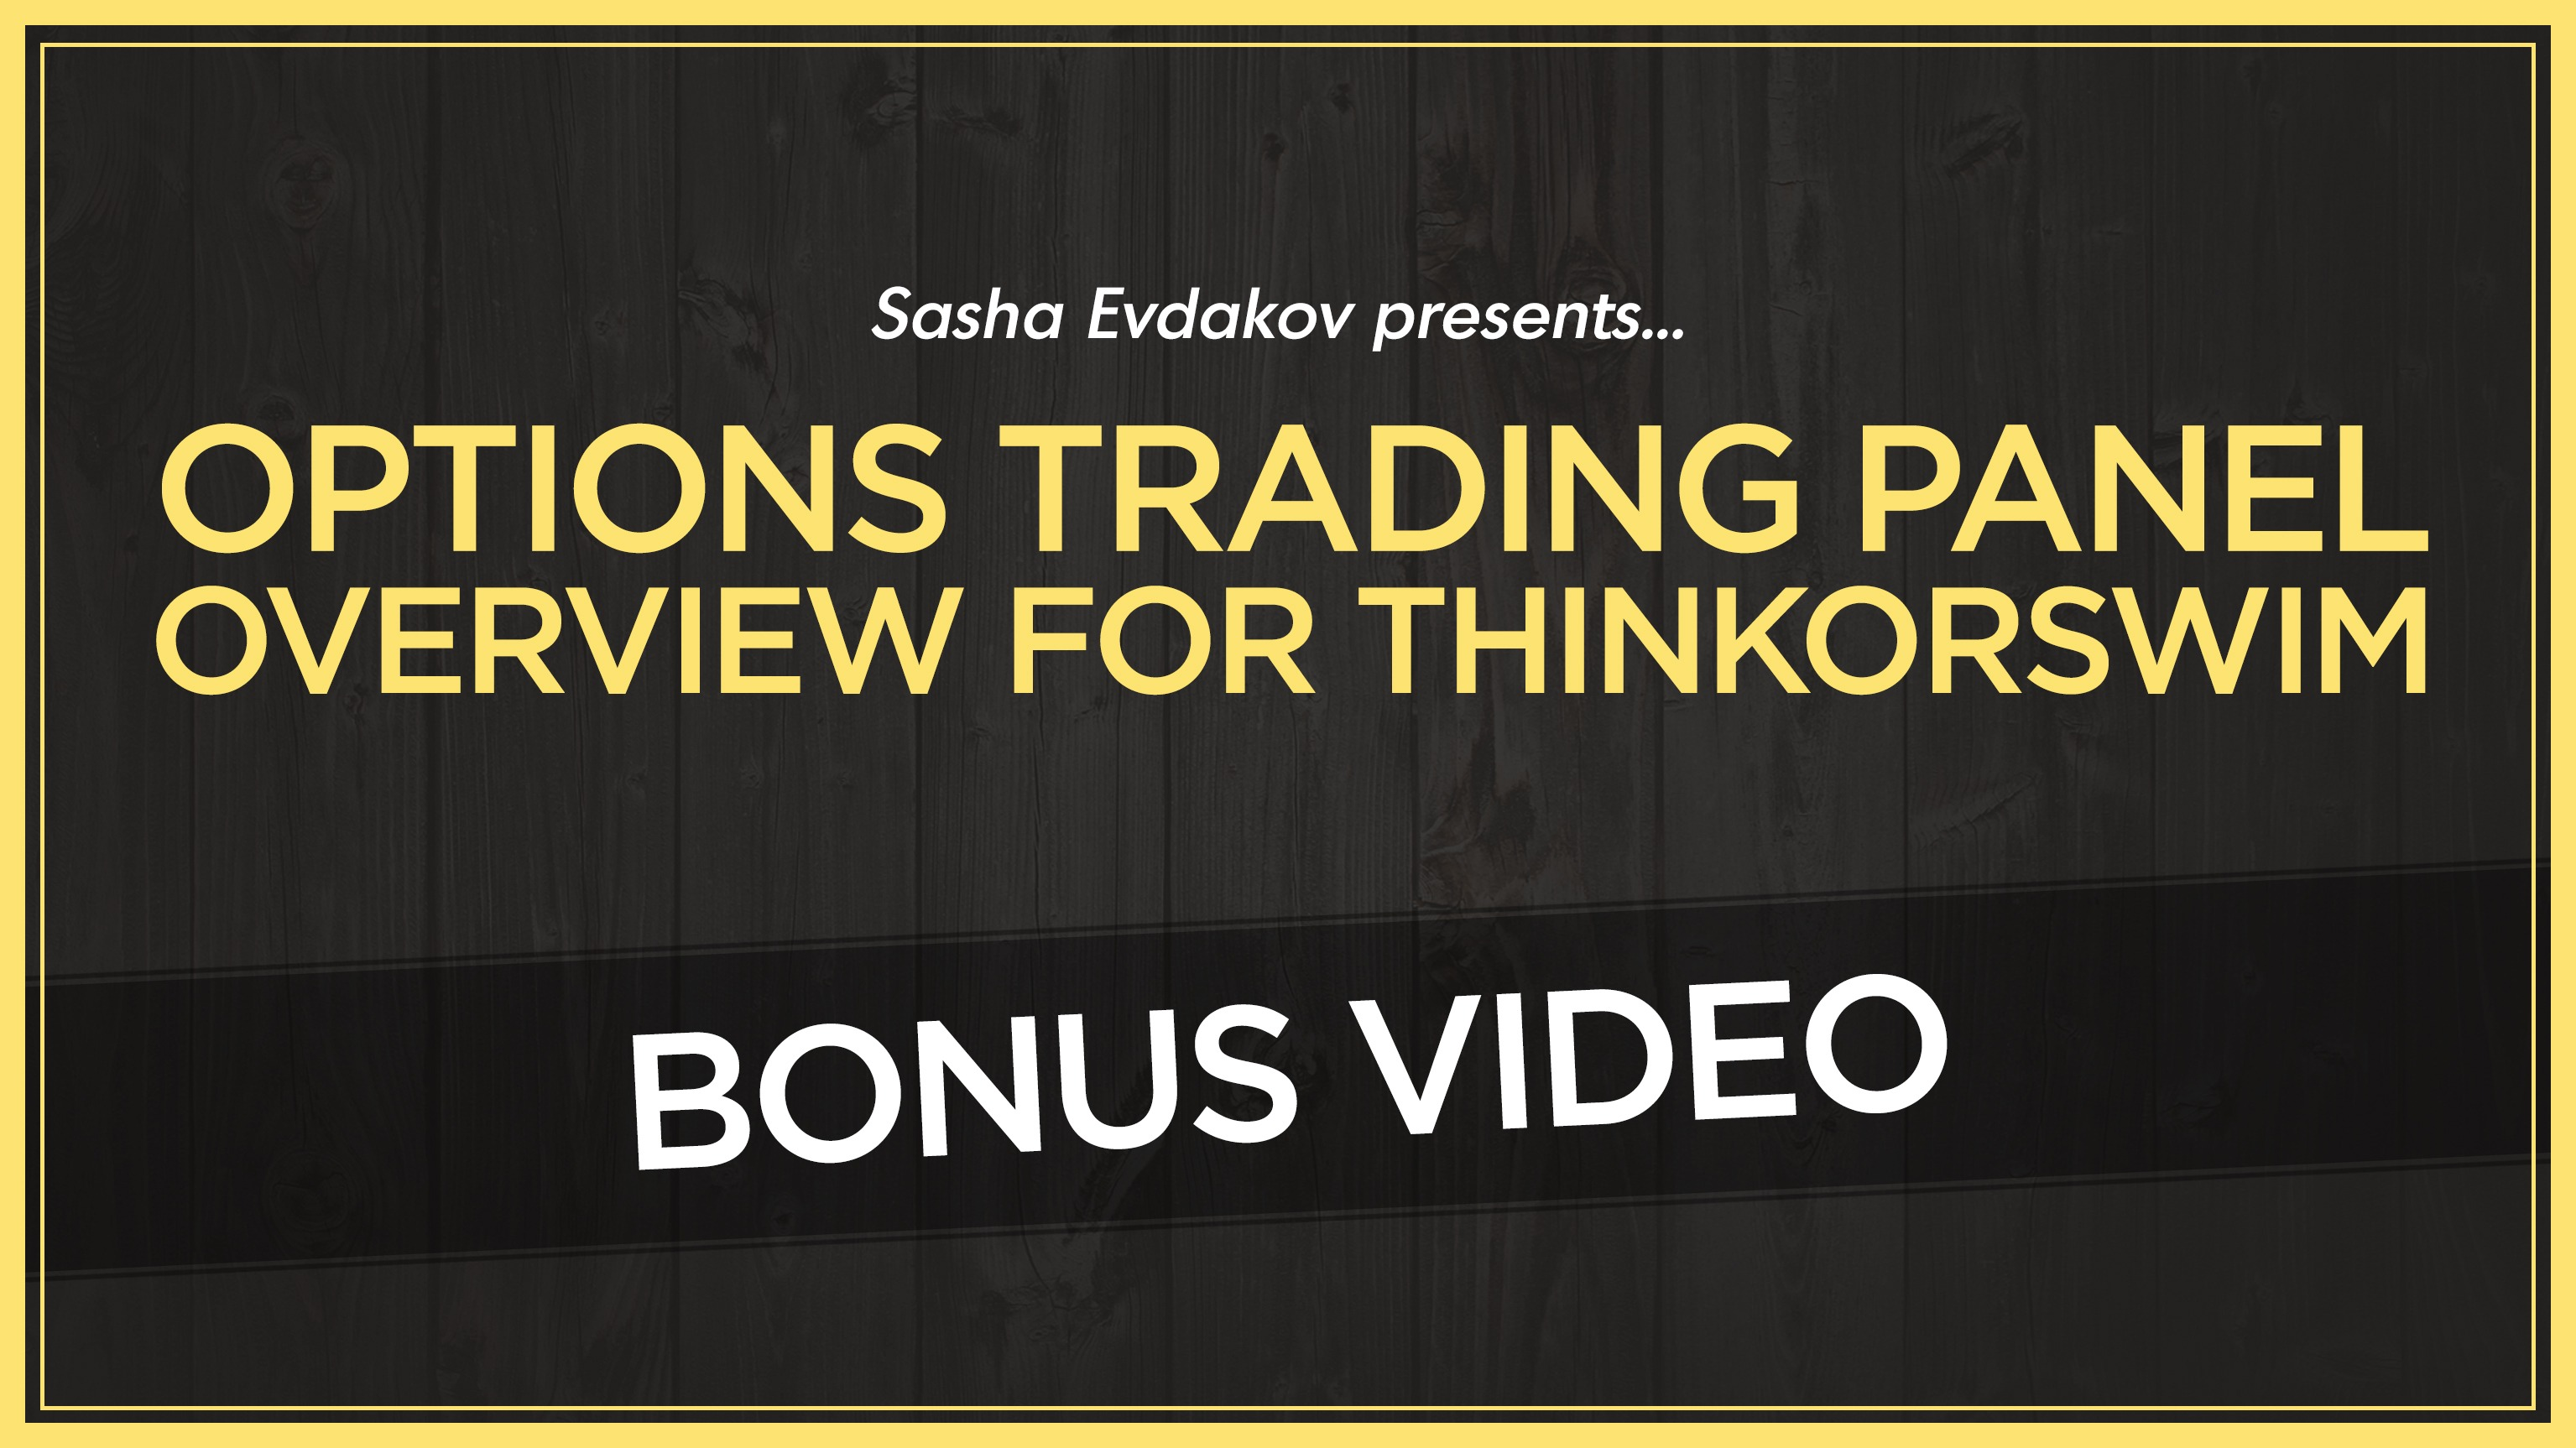 Options Trading Panel Overview for ThinkorSwim Thumbnail for Bonus Video